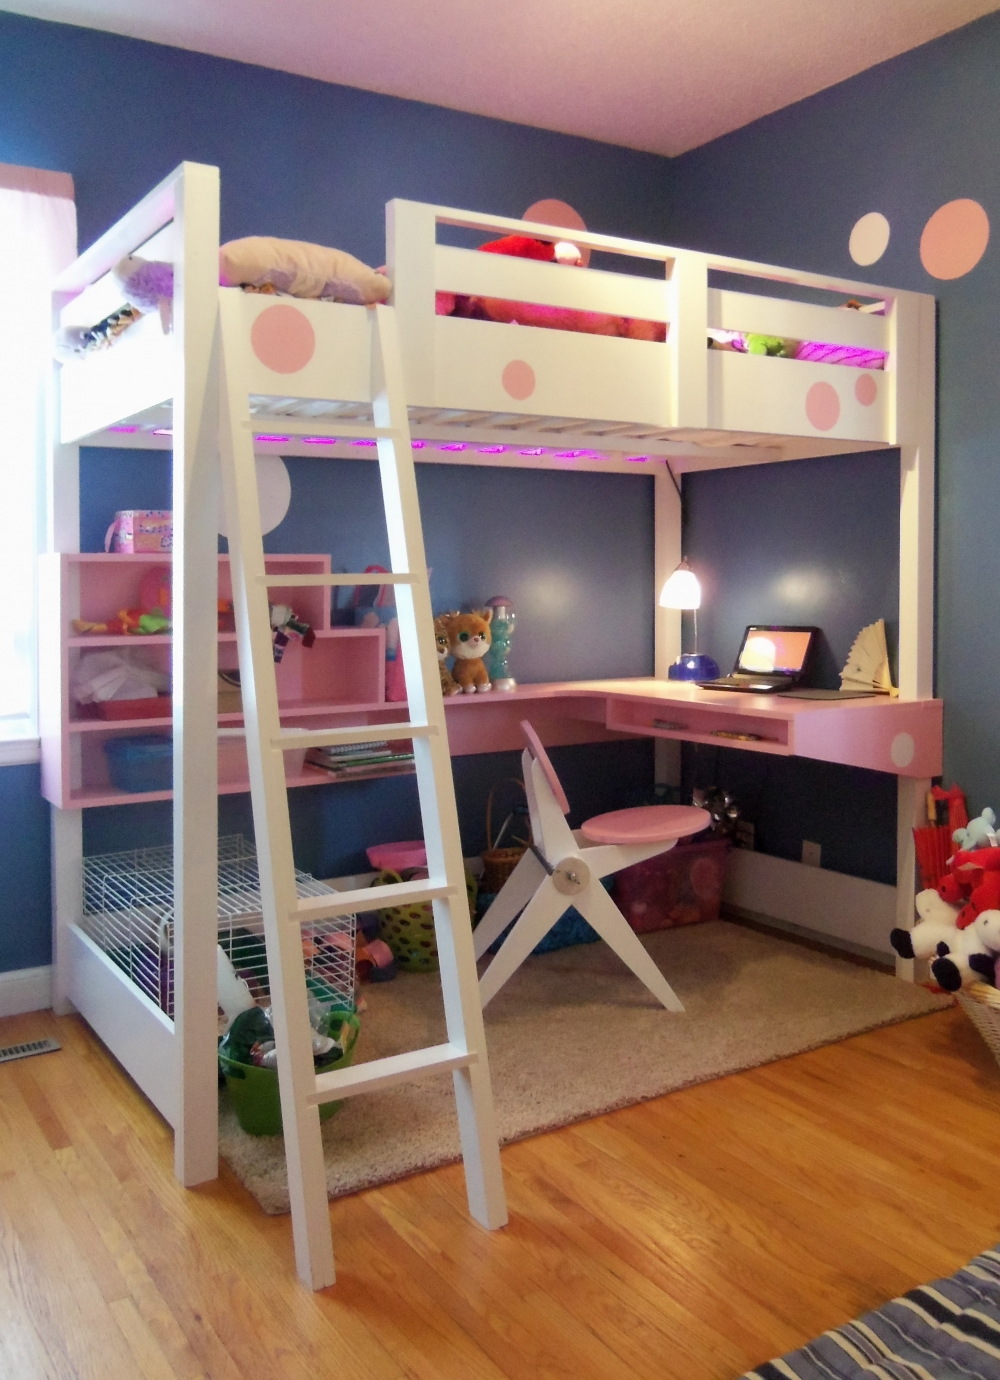 Stupendous Bunk Bed with Desk and Drawers On